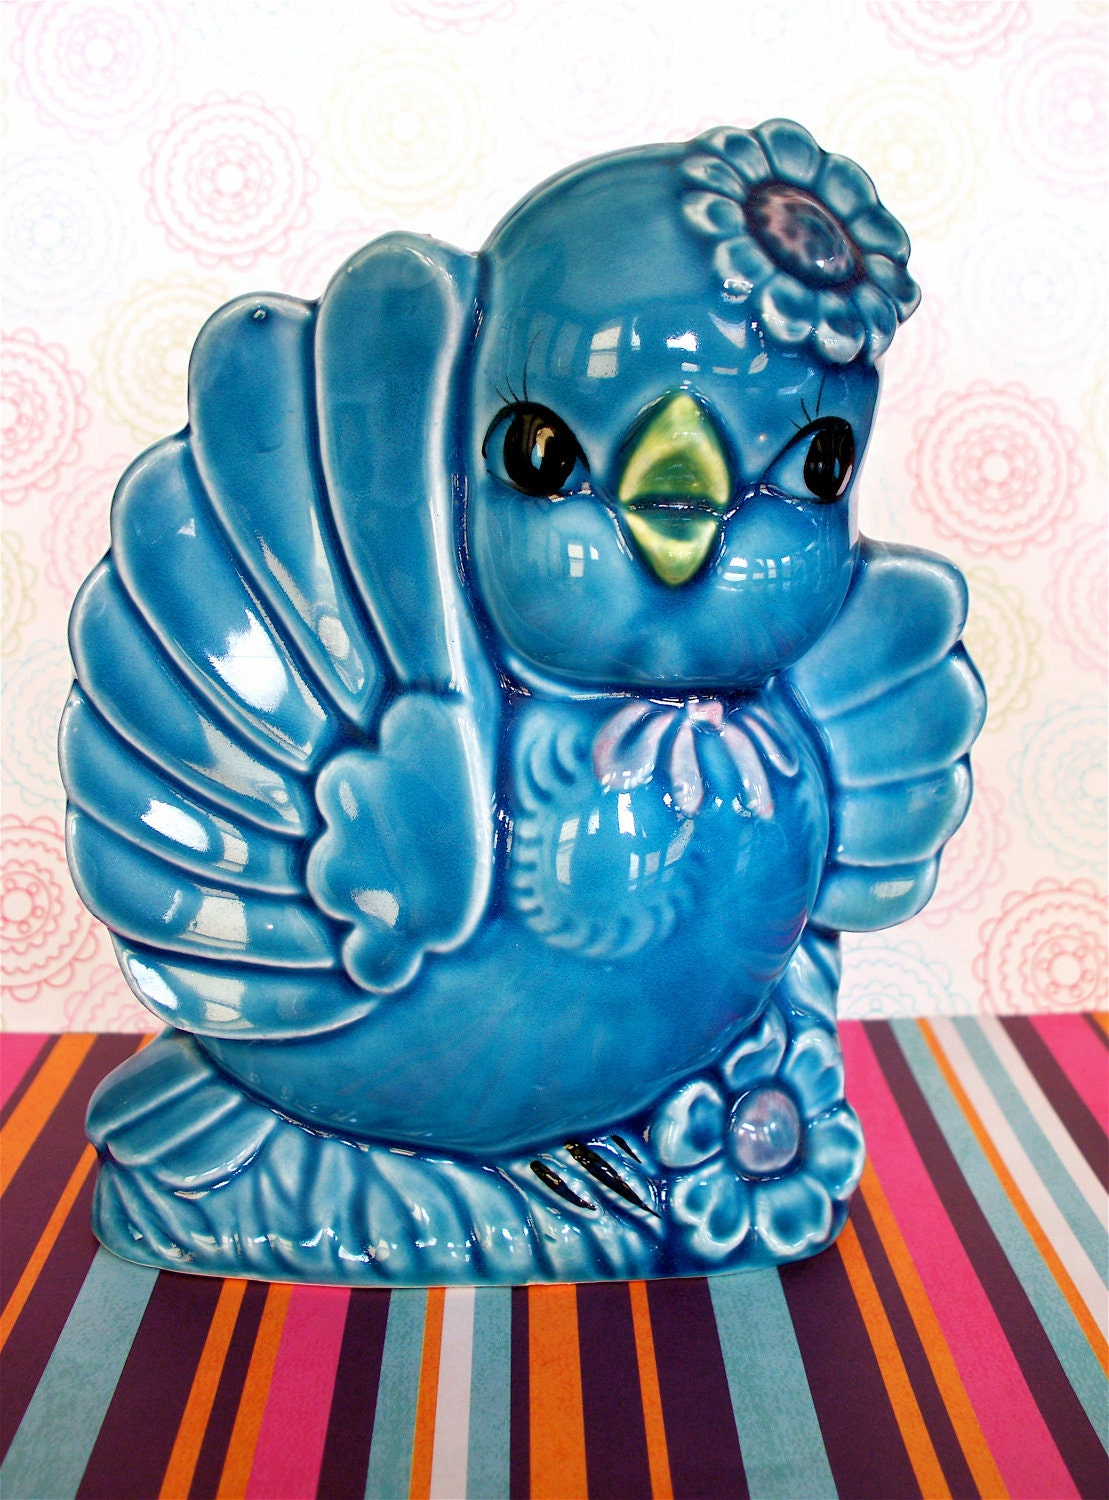 Kitschy 